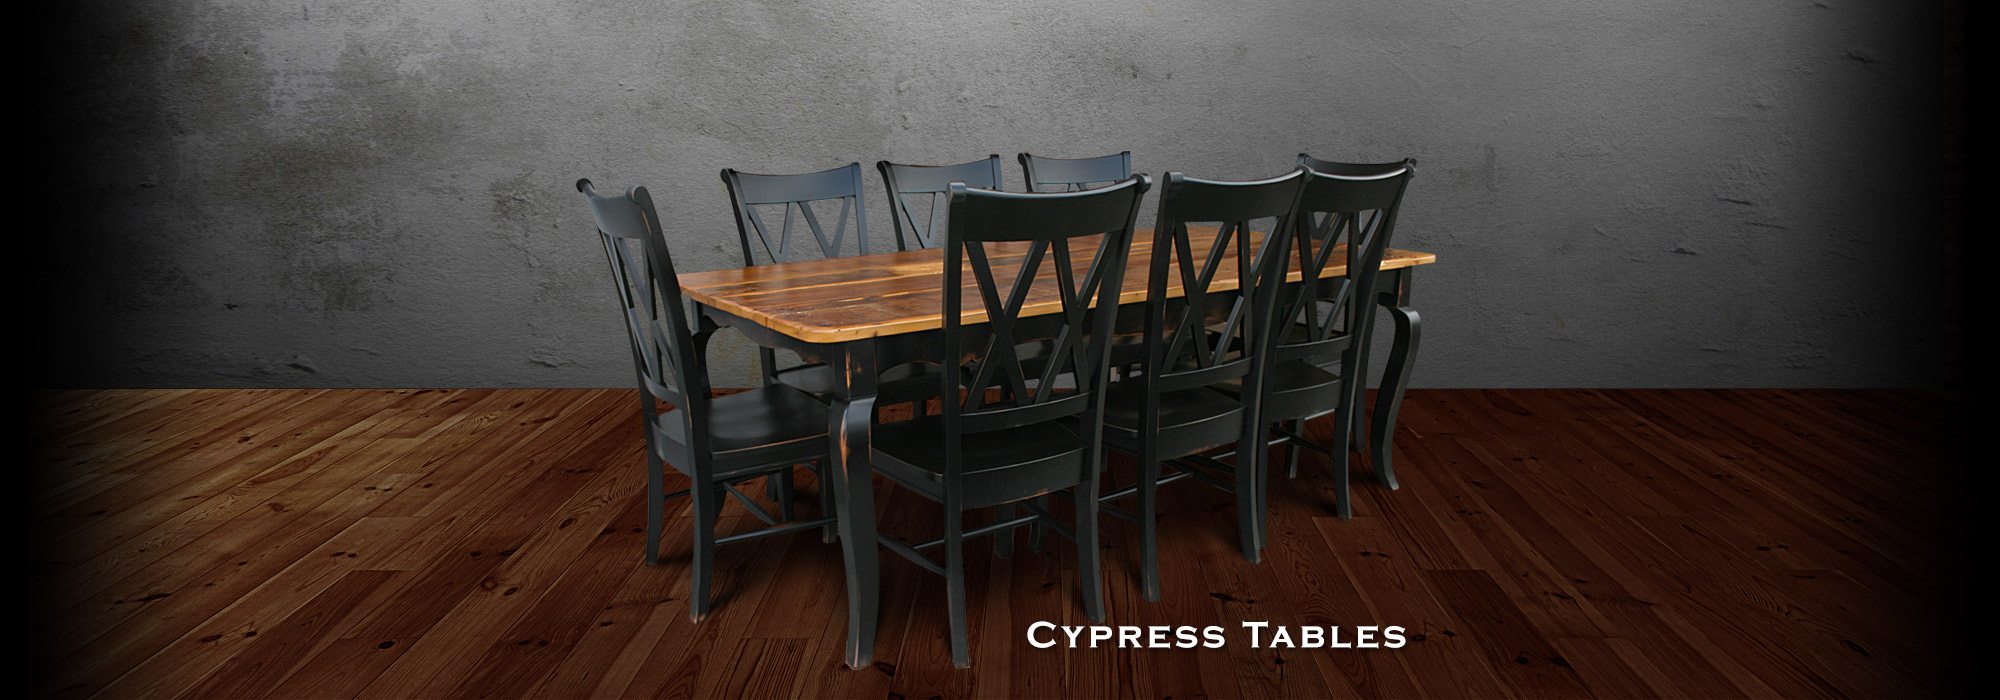 Cypress Tables